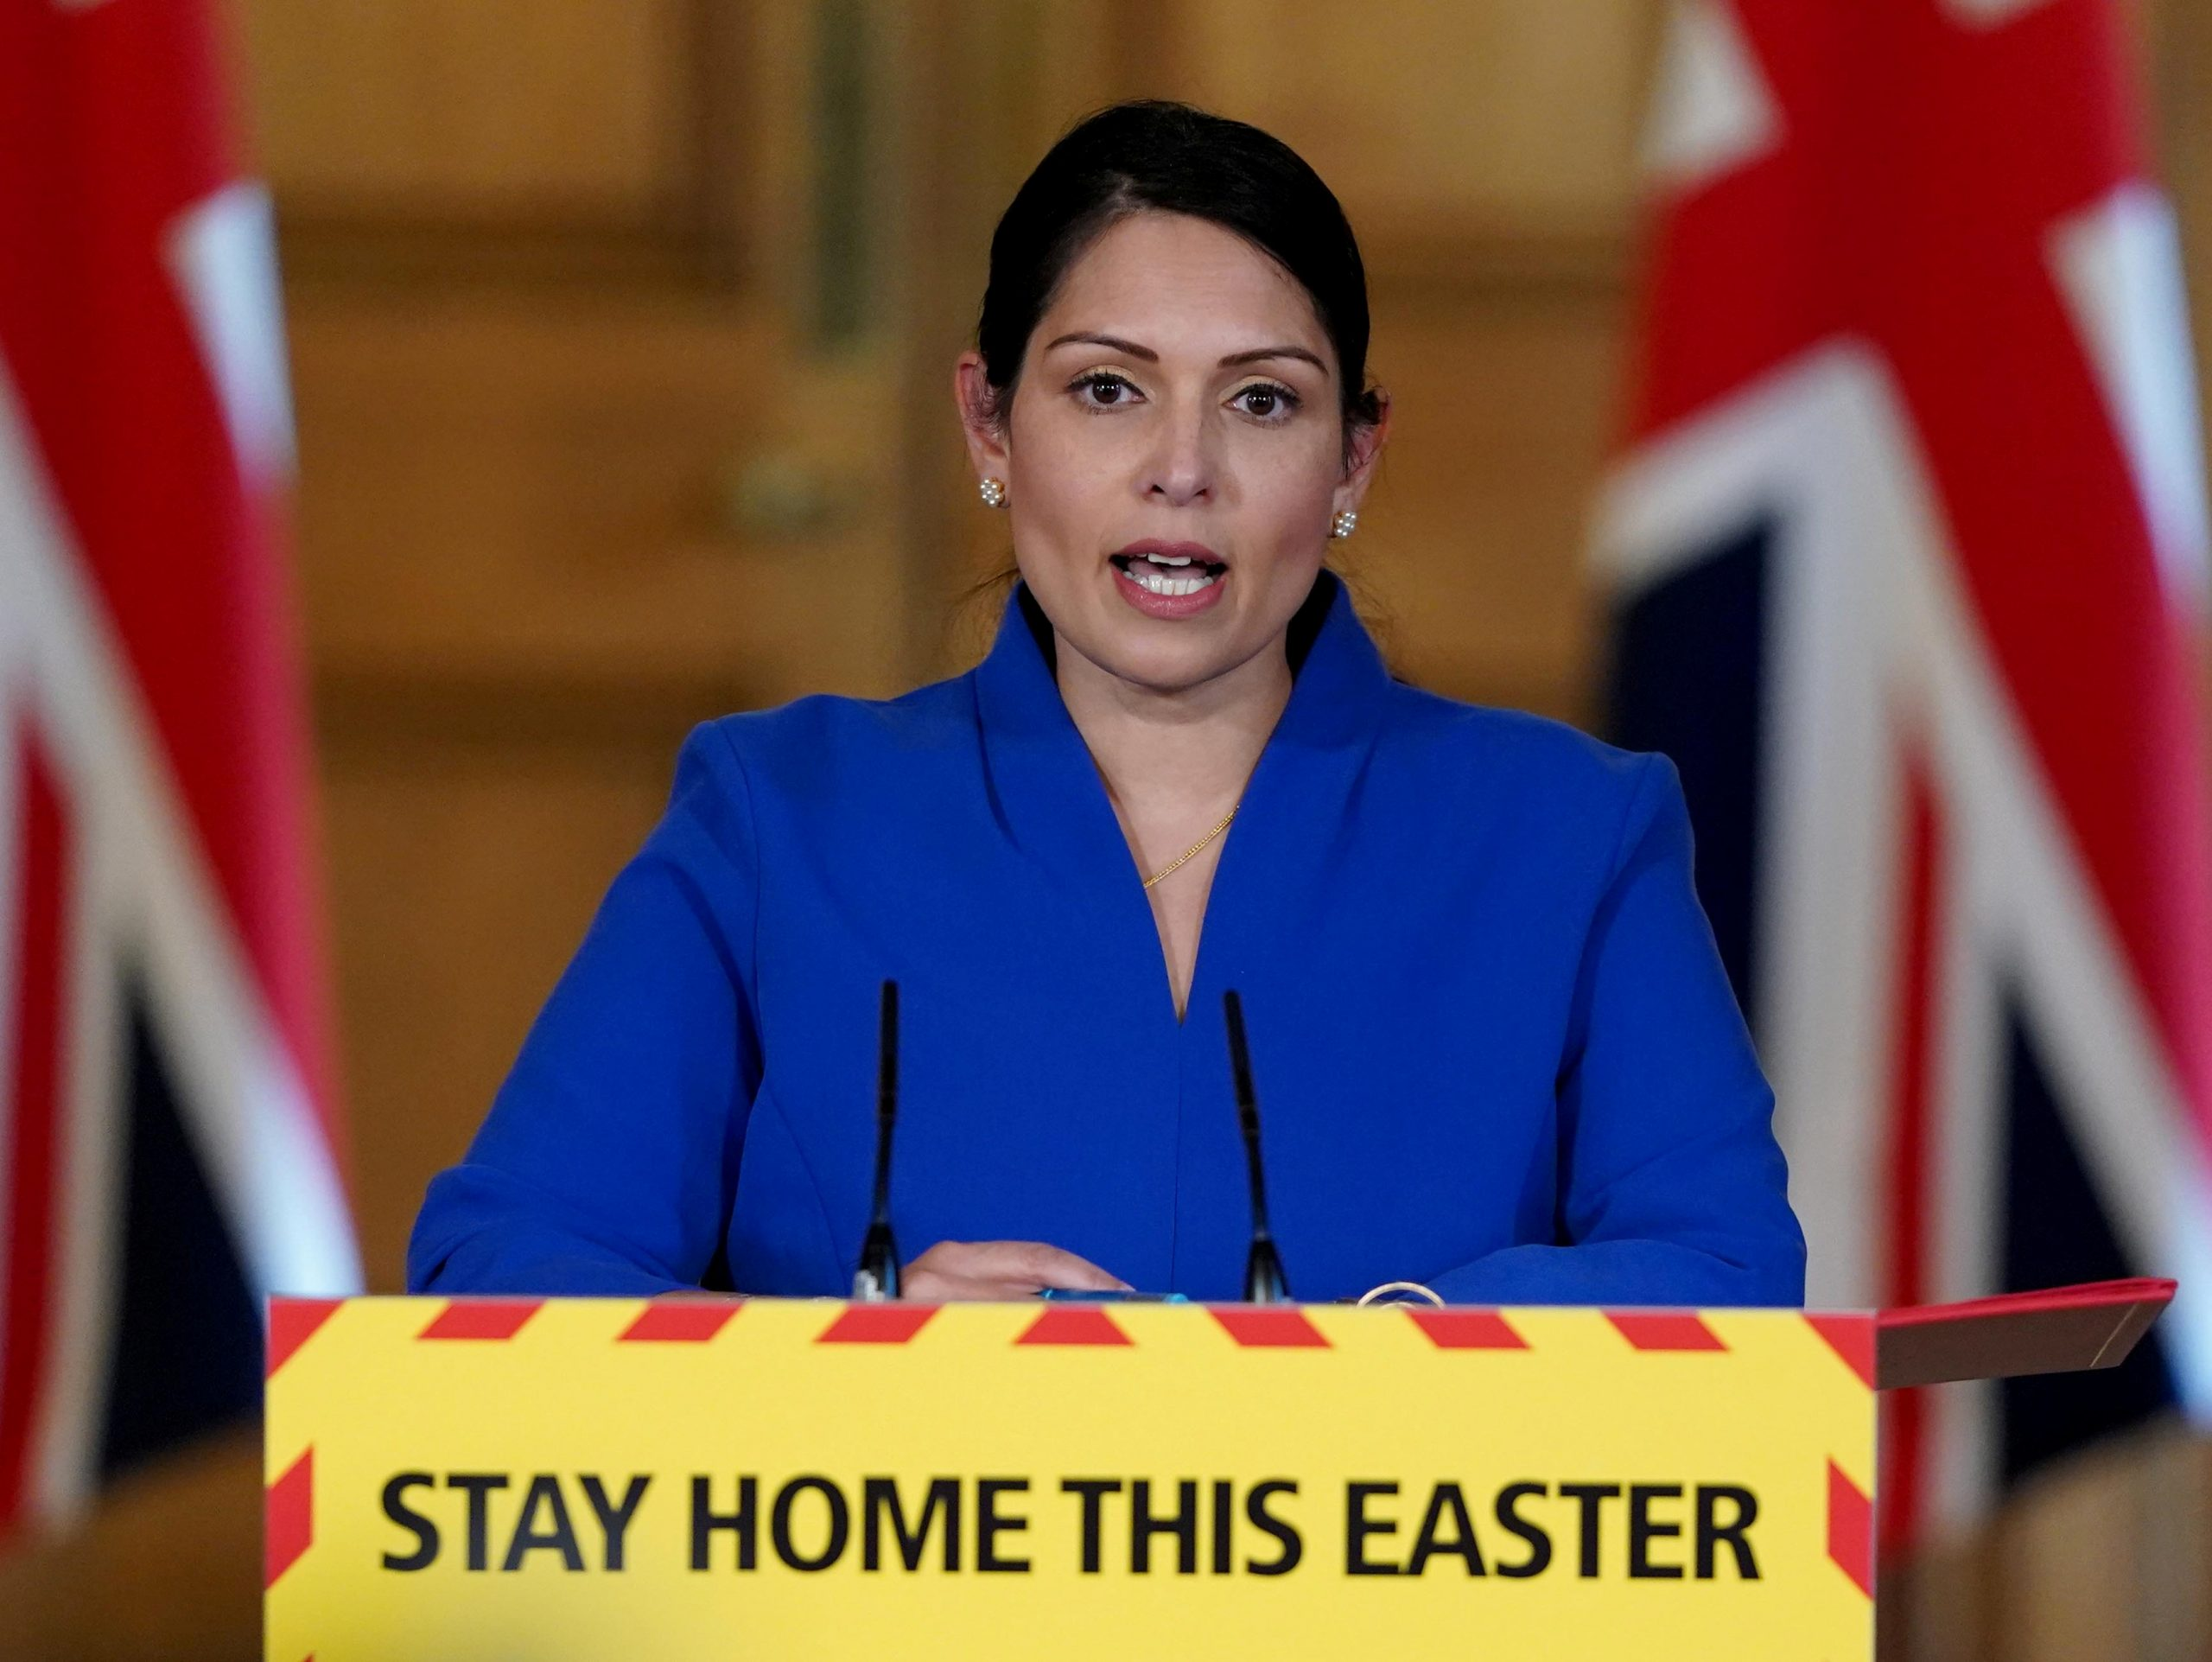 Priti Patel warns UK public to follow rules as COVID-19 ...